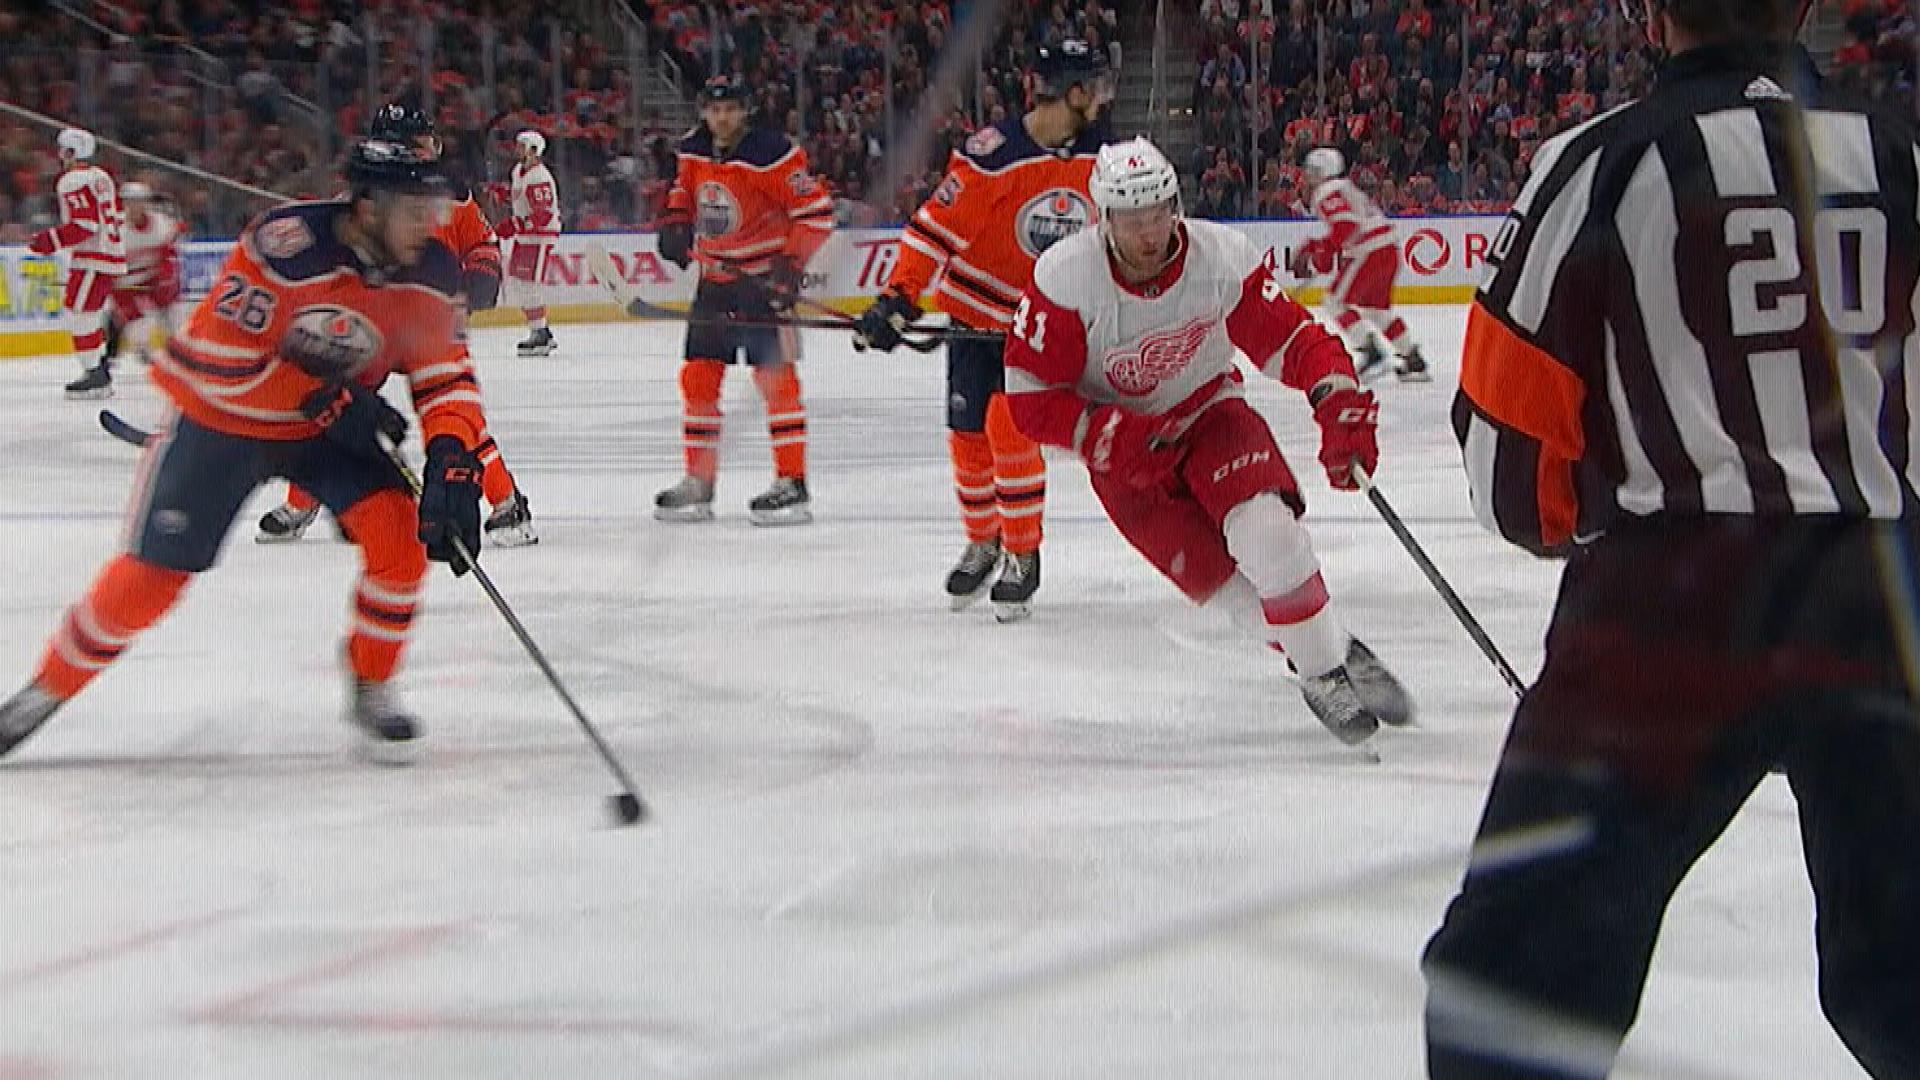 Luke Glendening's second goal of game helps Red Wings regain two-goal lead